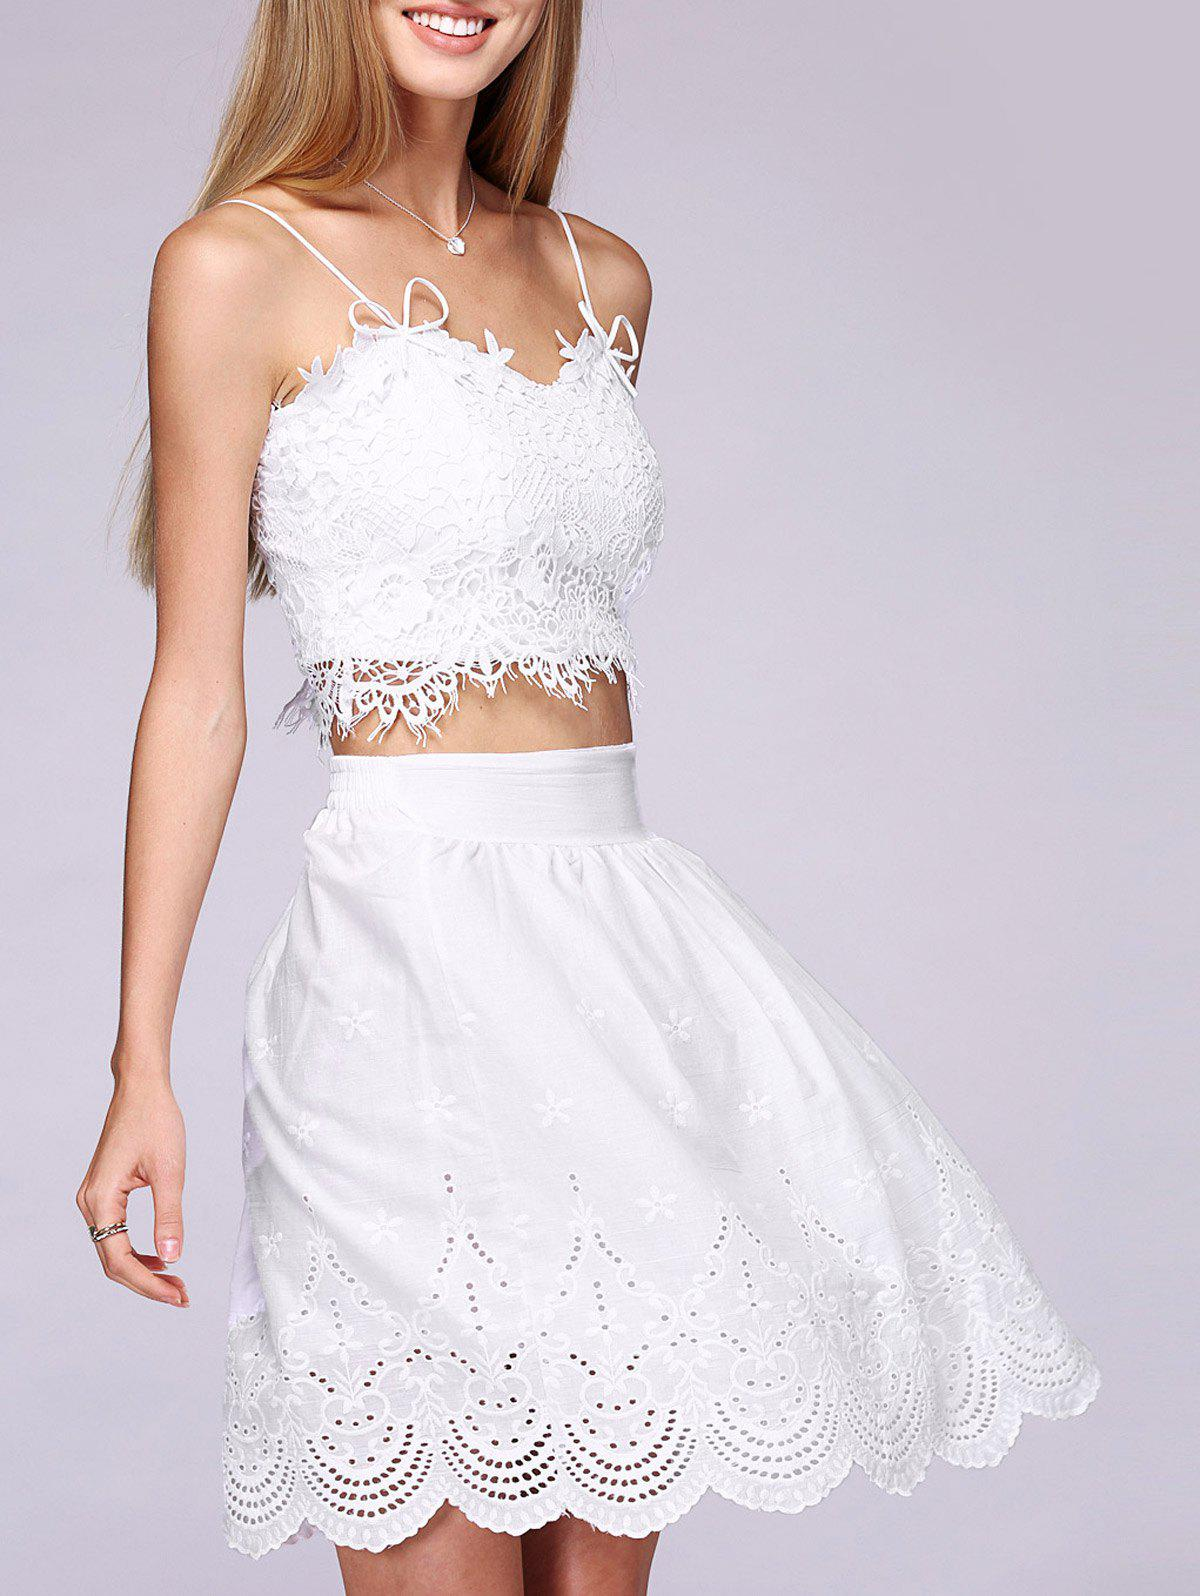 Bowknot Lace Crop Top and Laciness High Waist Skirt Twinset